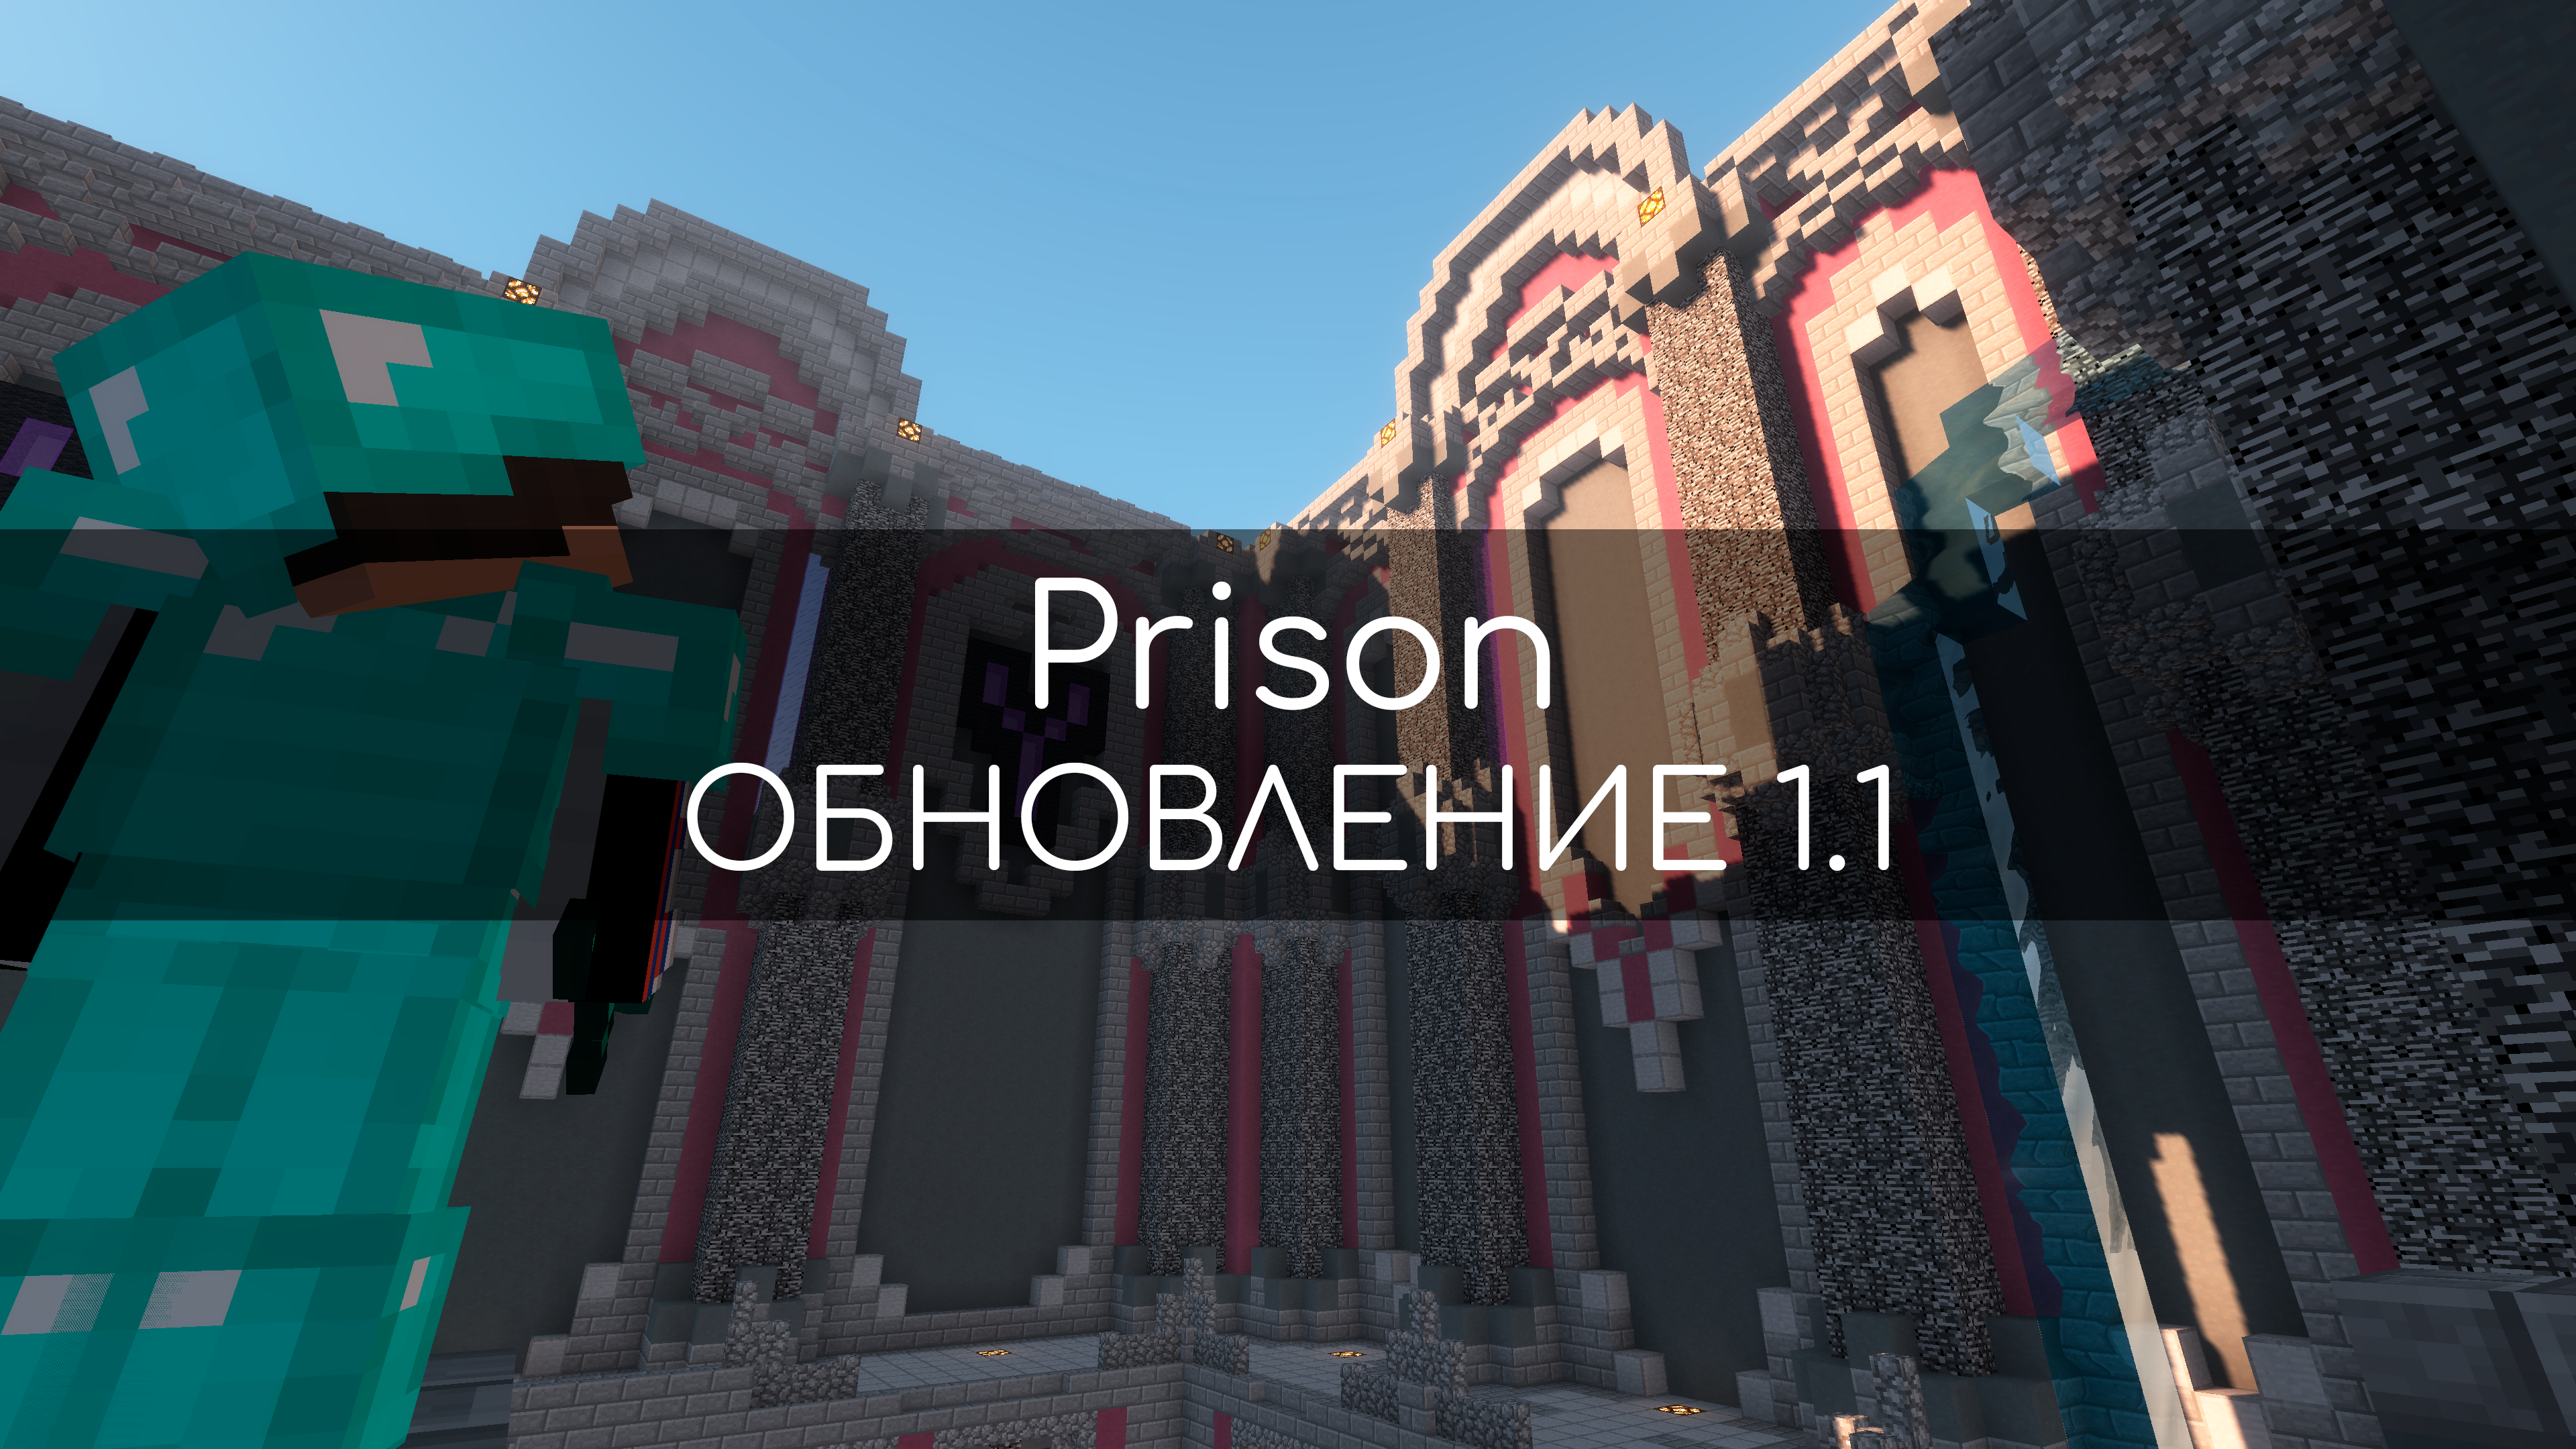 2021-06-07_19.43.07-фш.png